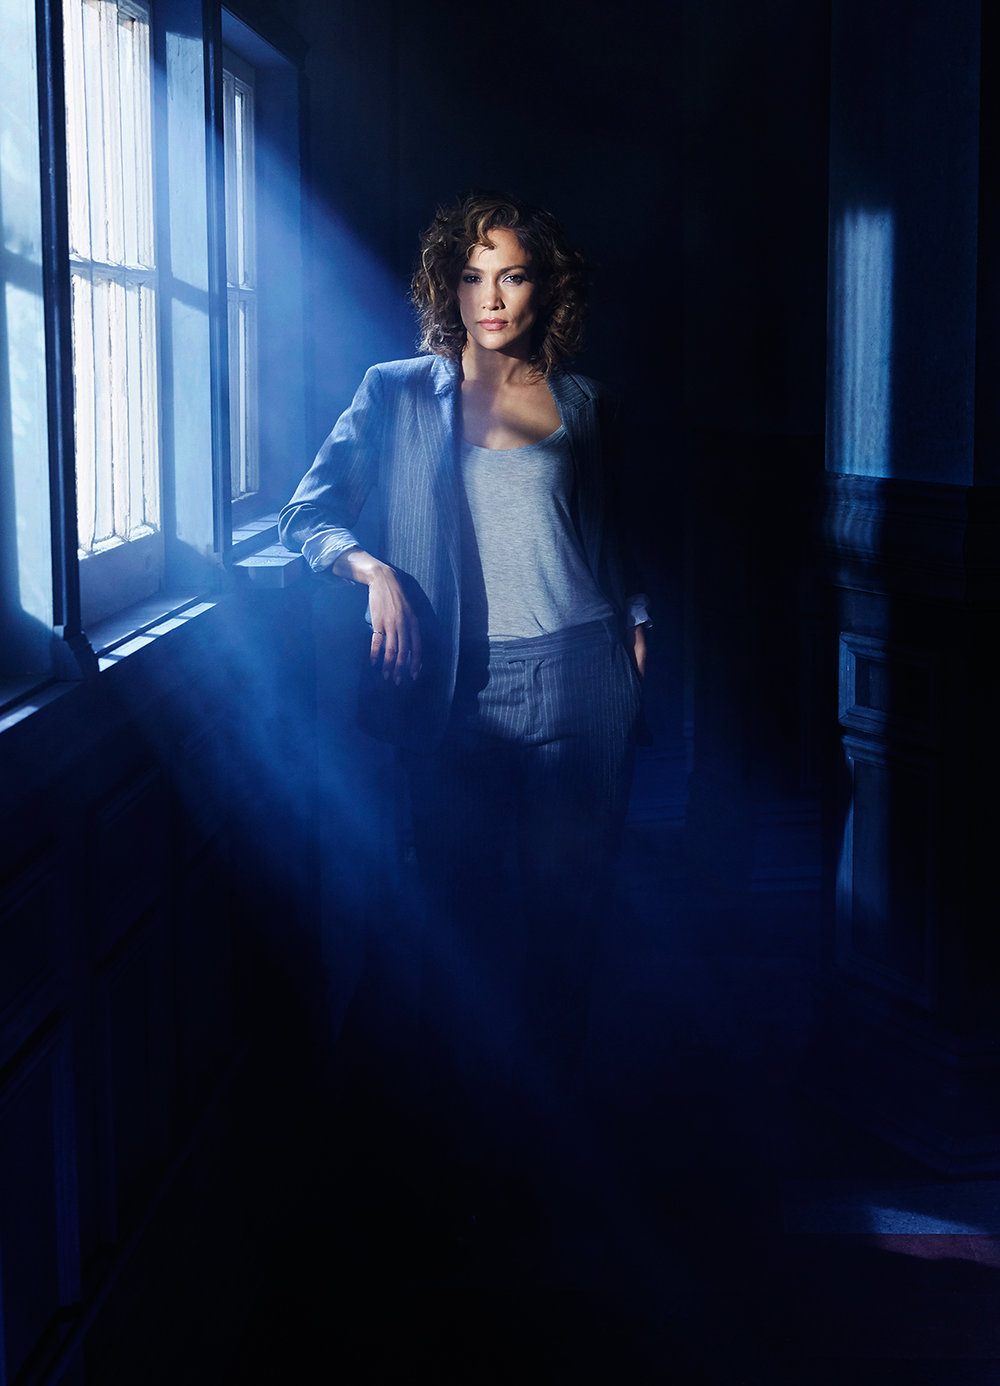 NBC - Jennifer Lopez in Shades Of Blue - New York City